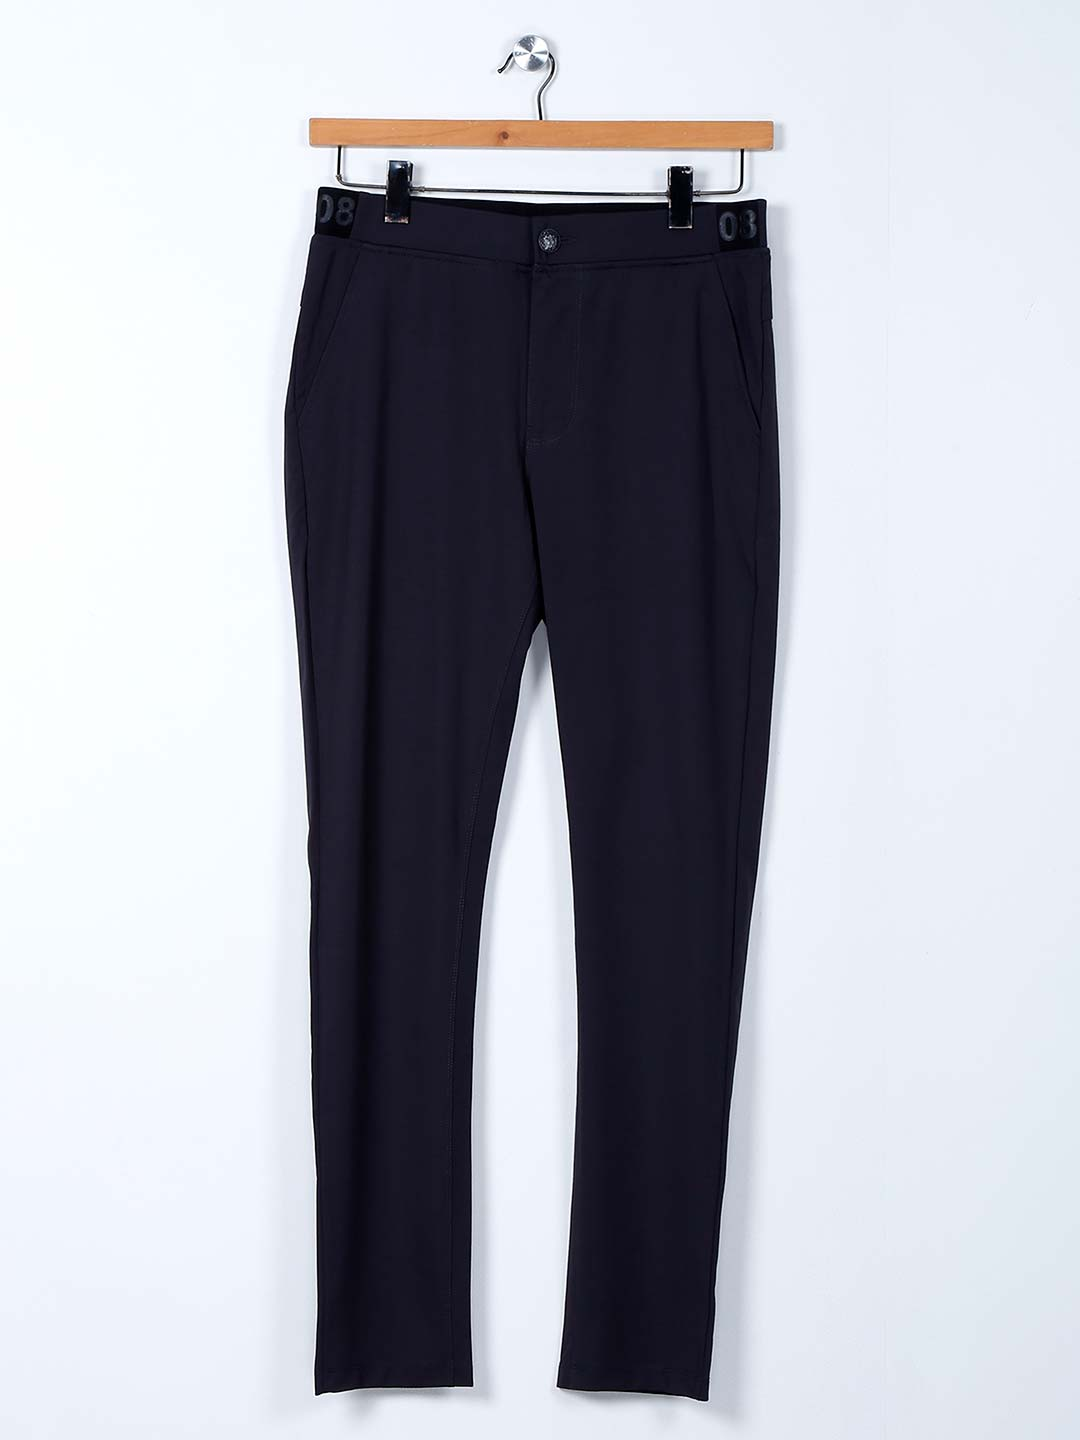 Cookyss grey cotton track pant?imgeng=w_400